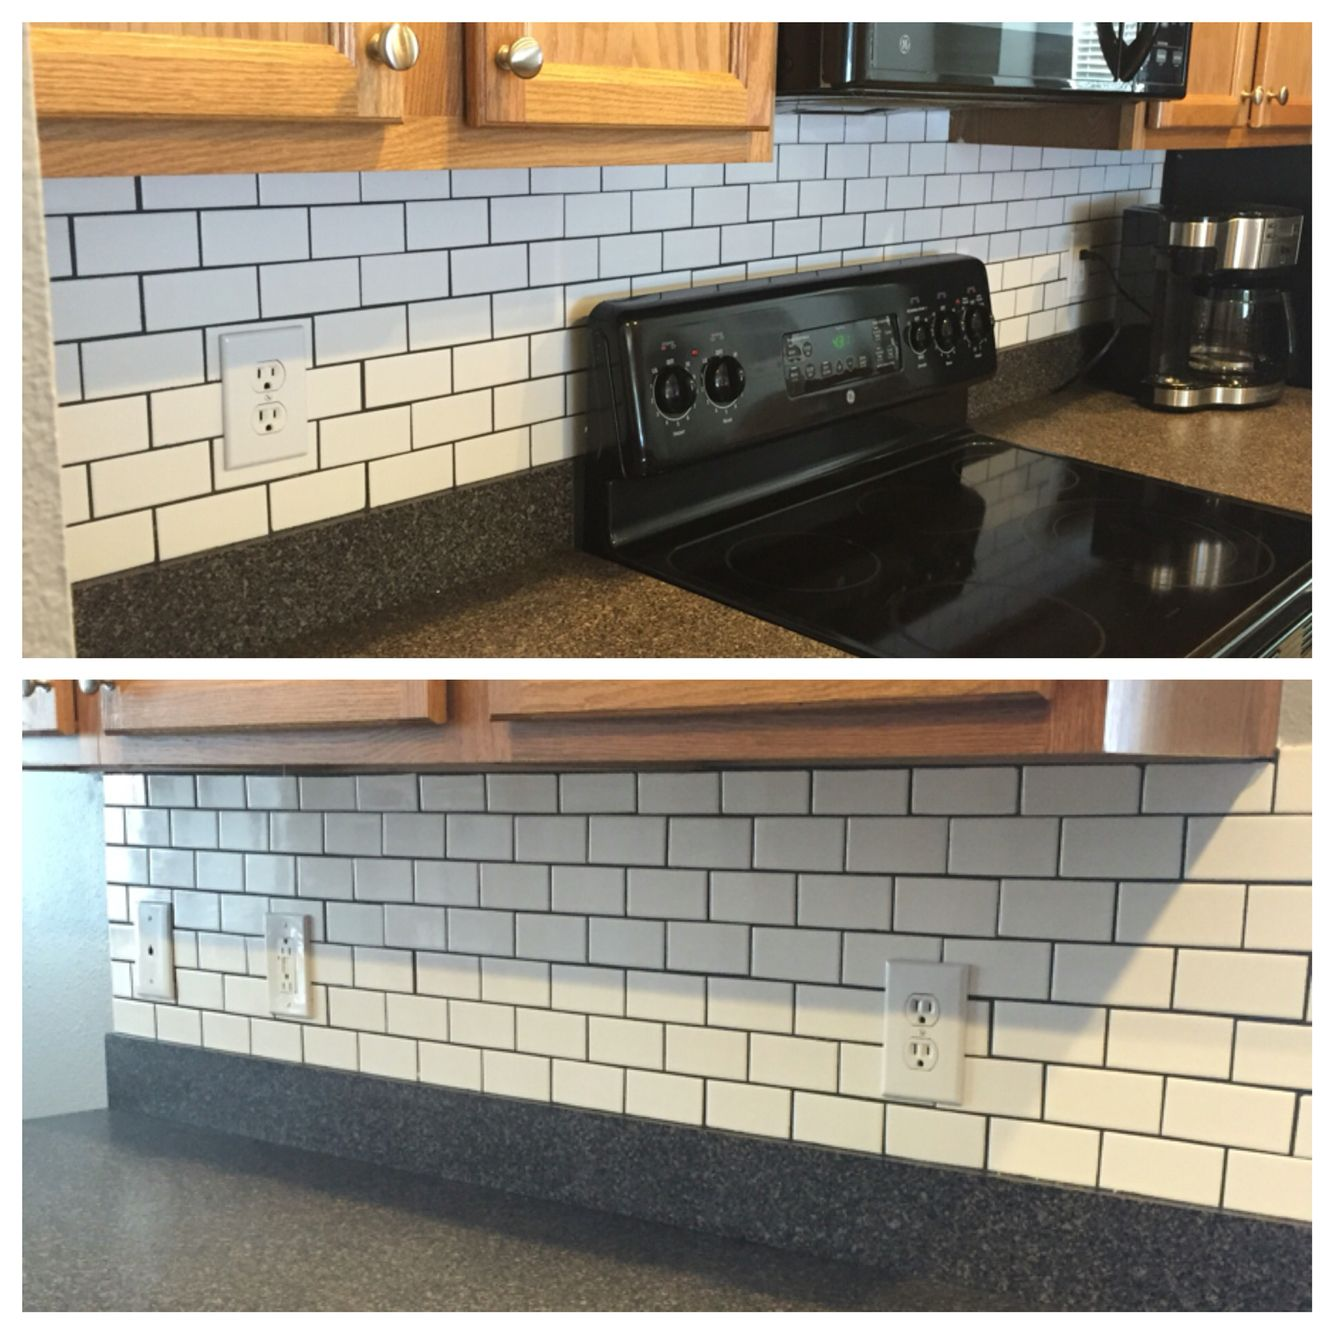 - Installed New Backsplash! Small White Subway Tiles With Charcoal